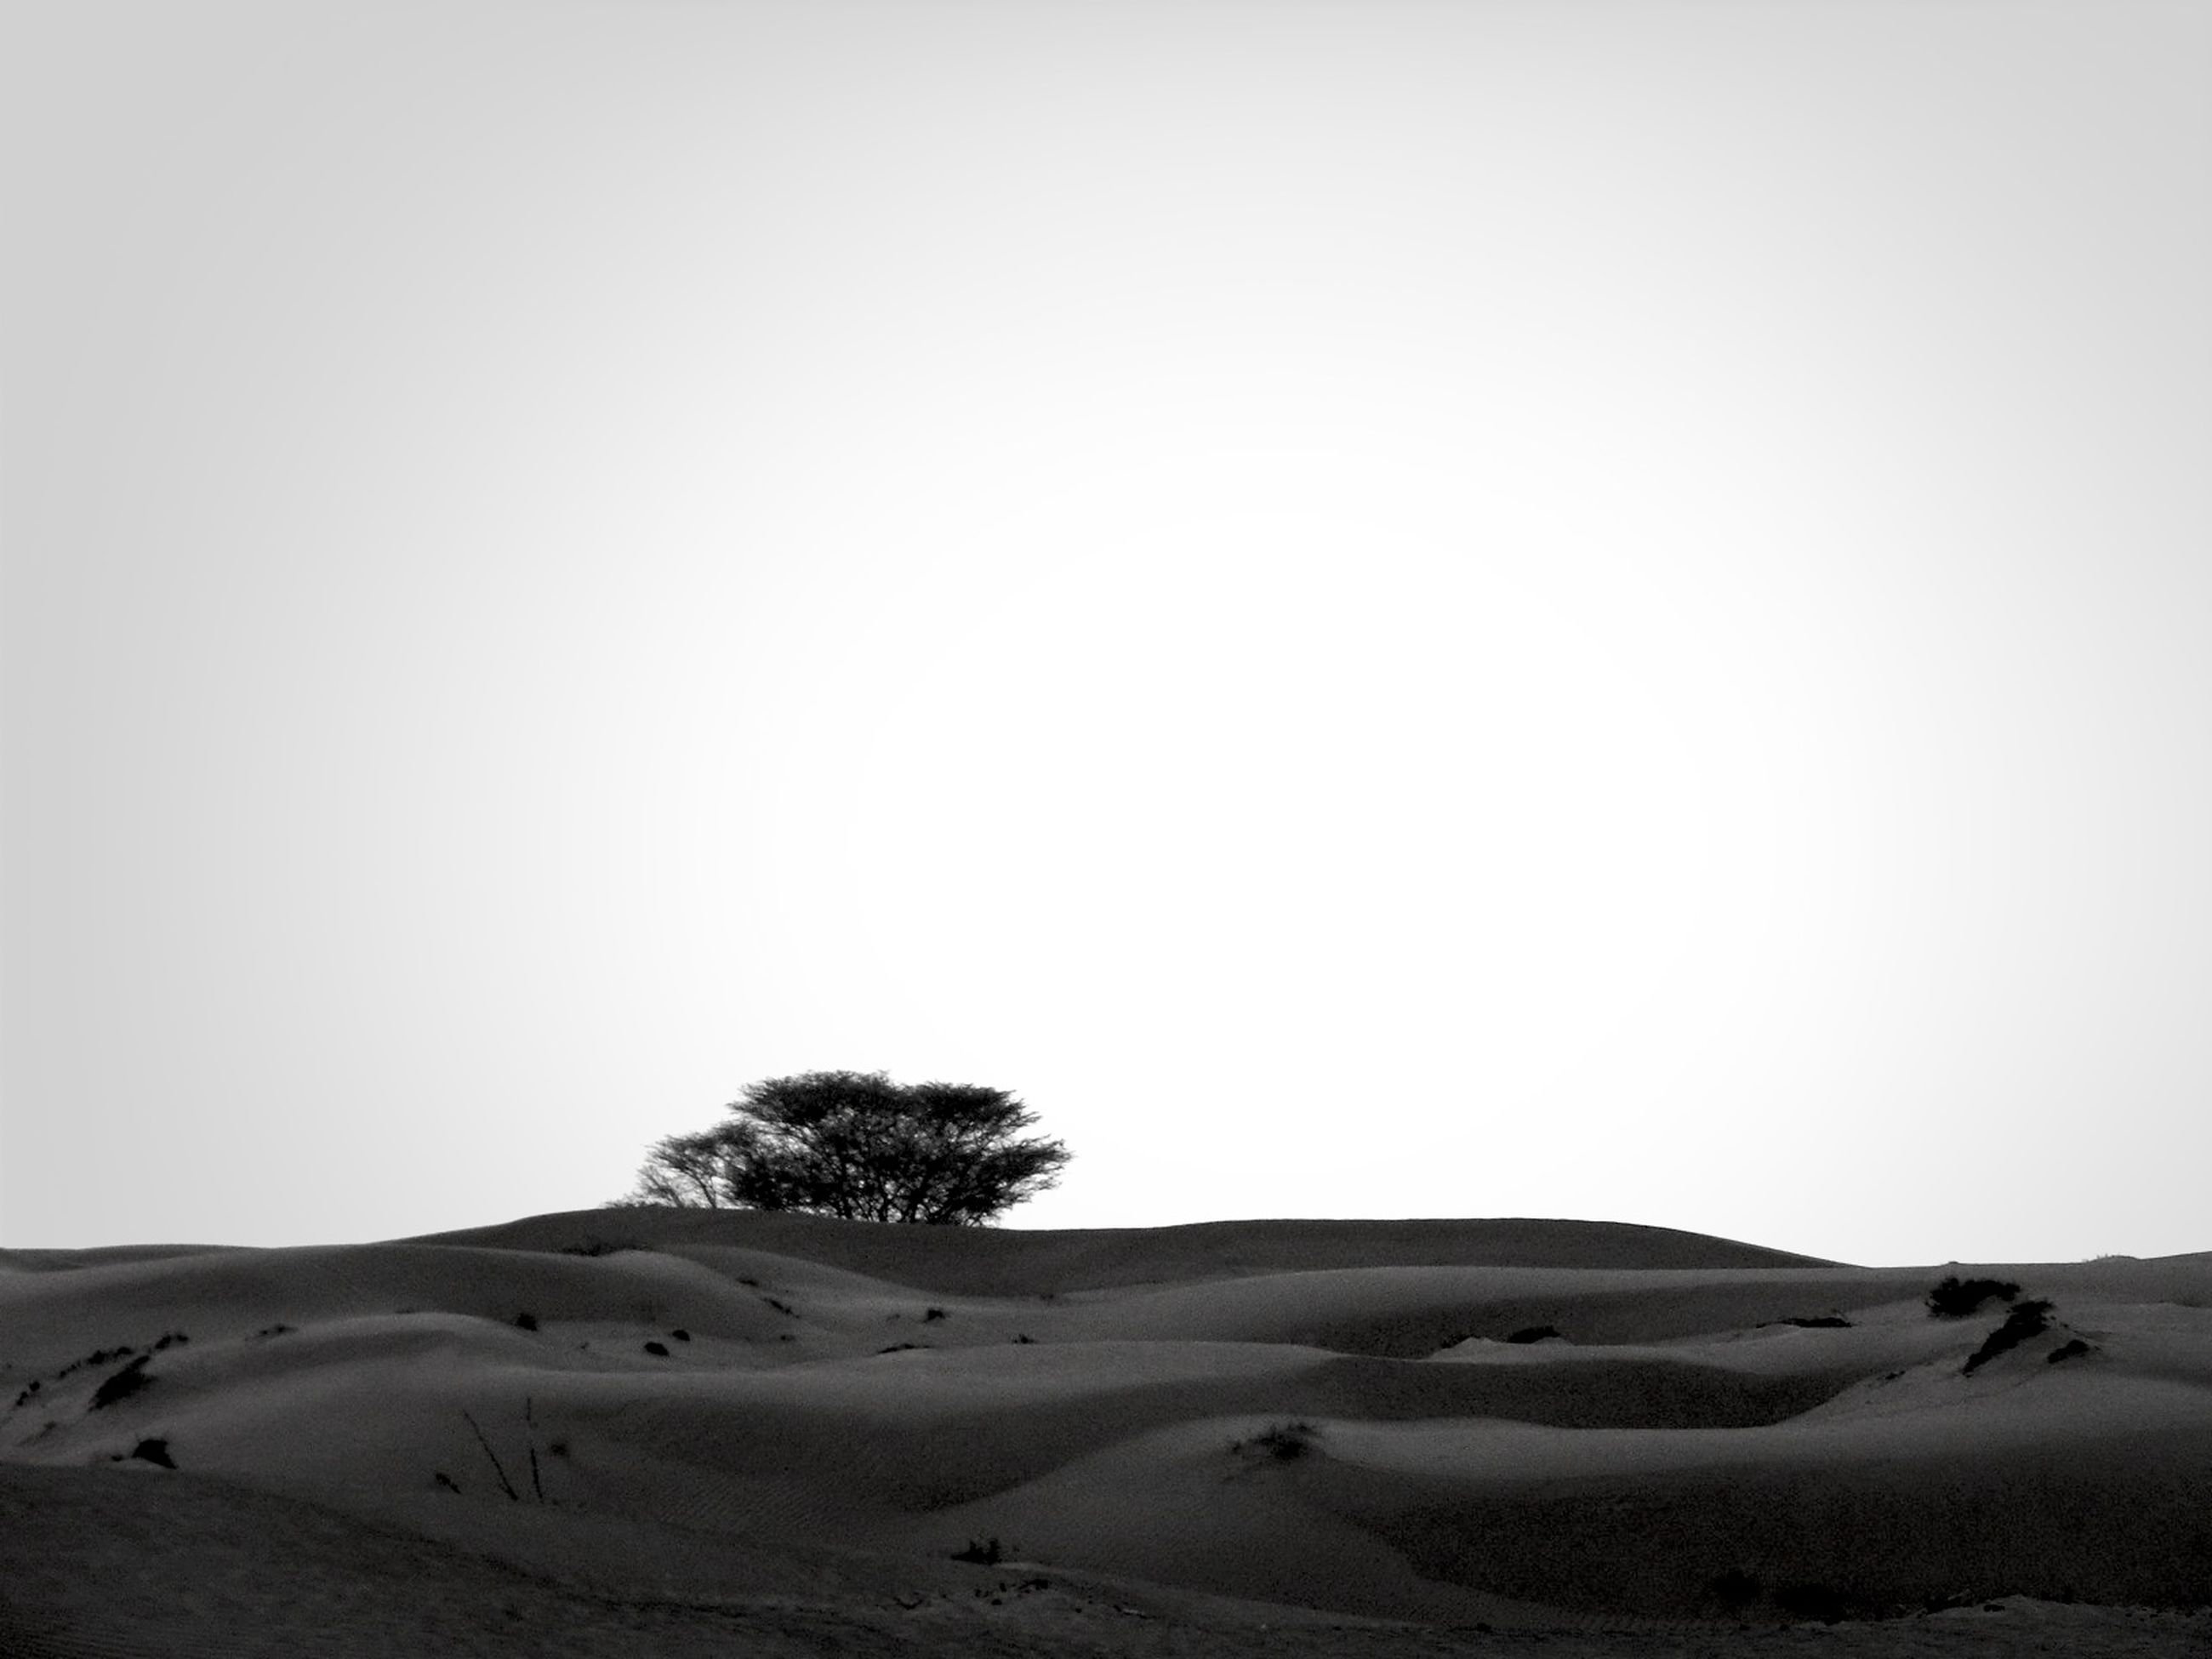 landscape, clear sky, tranquil scene, tranquility, desert, copy space, scenics, arid climate, sand, nature, beauty in nature, mountain, non-urban scene, remote, sand dune, horizon over land, barren, sky, tree, solitude